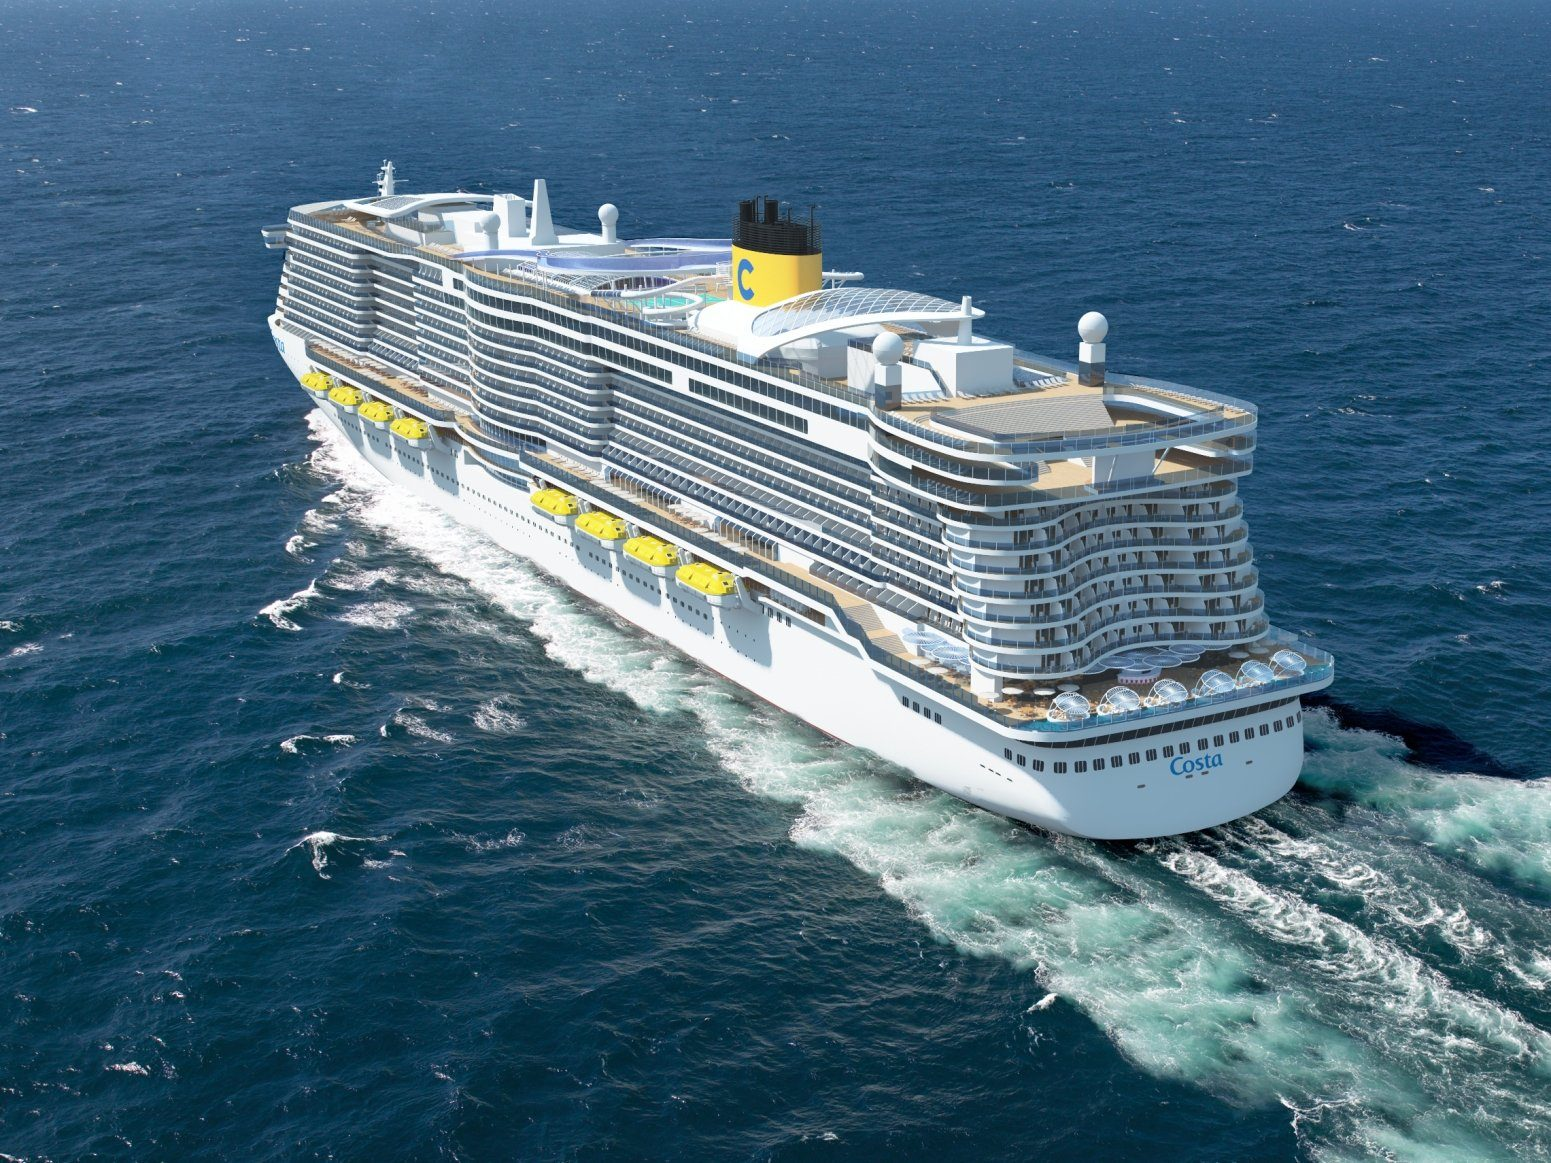 Shell strikes LNG deal for cruise ships - News for the Oil ...